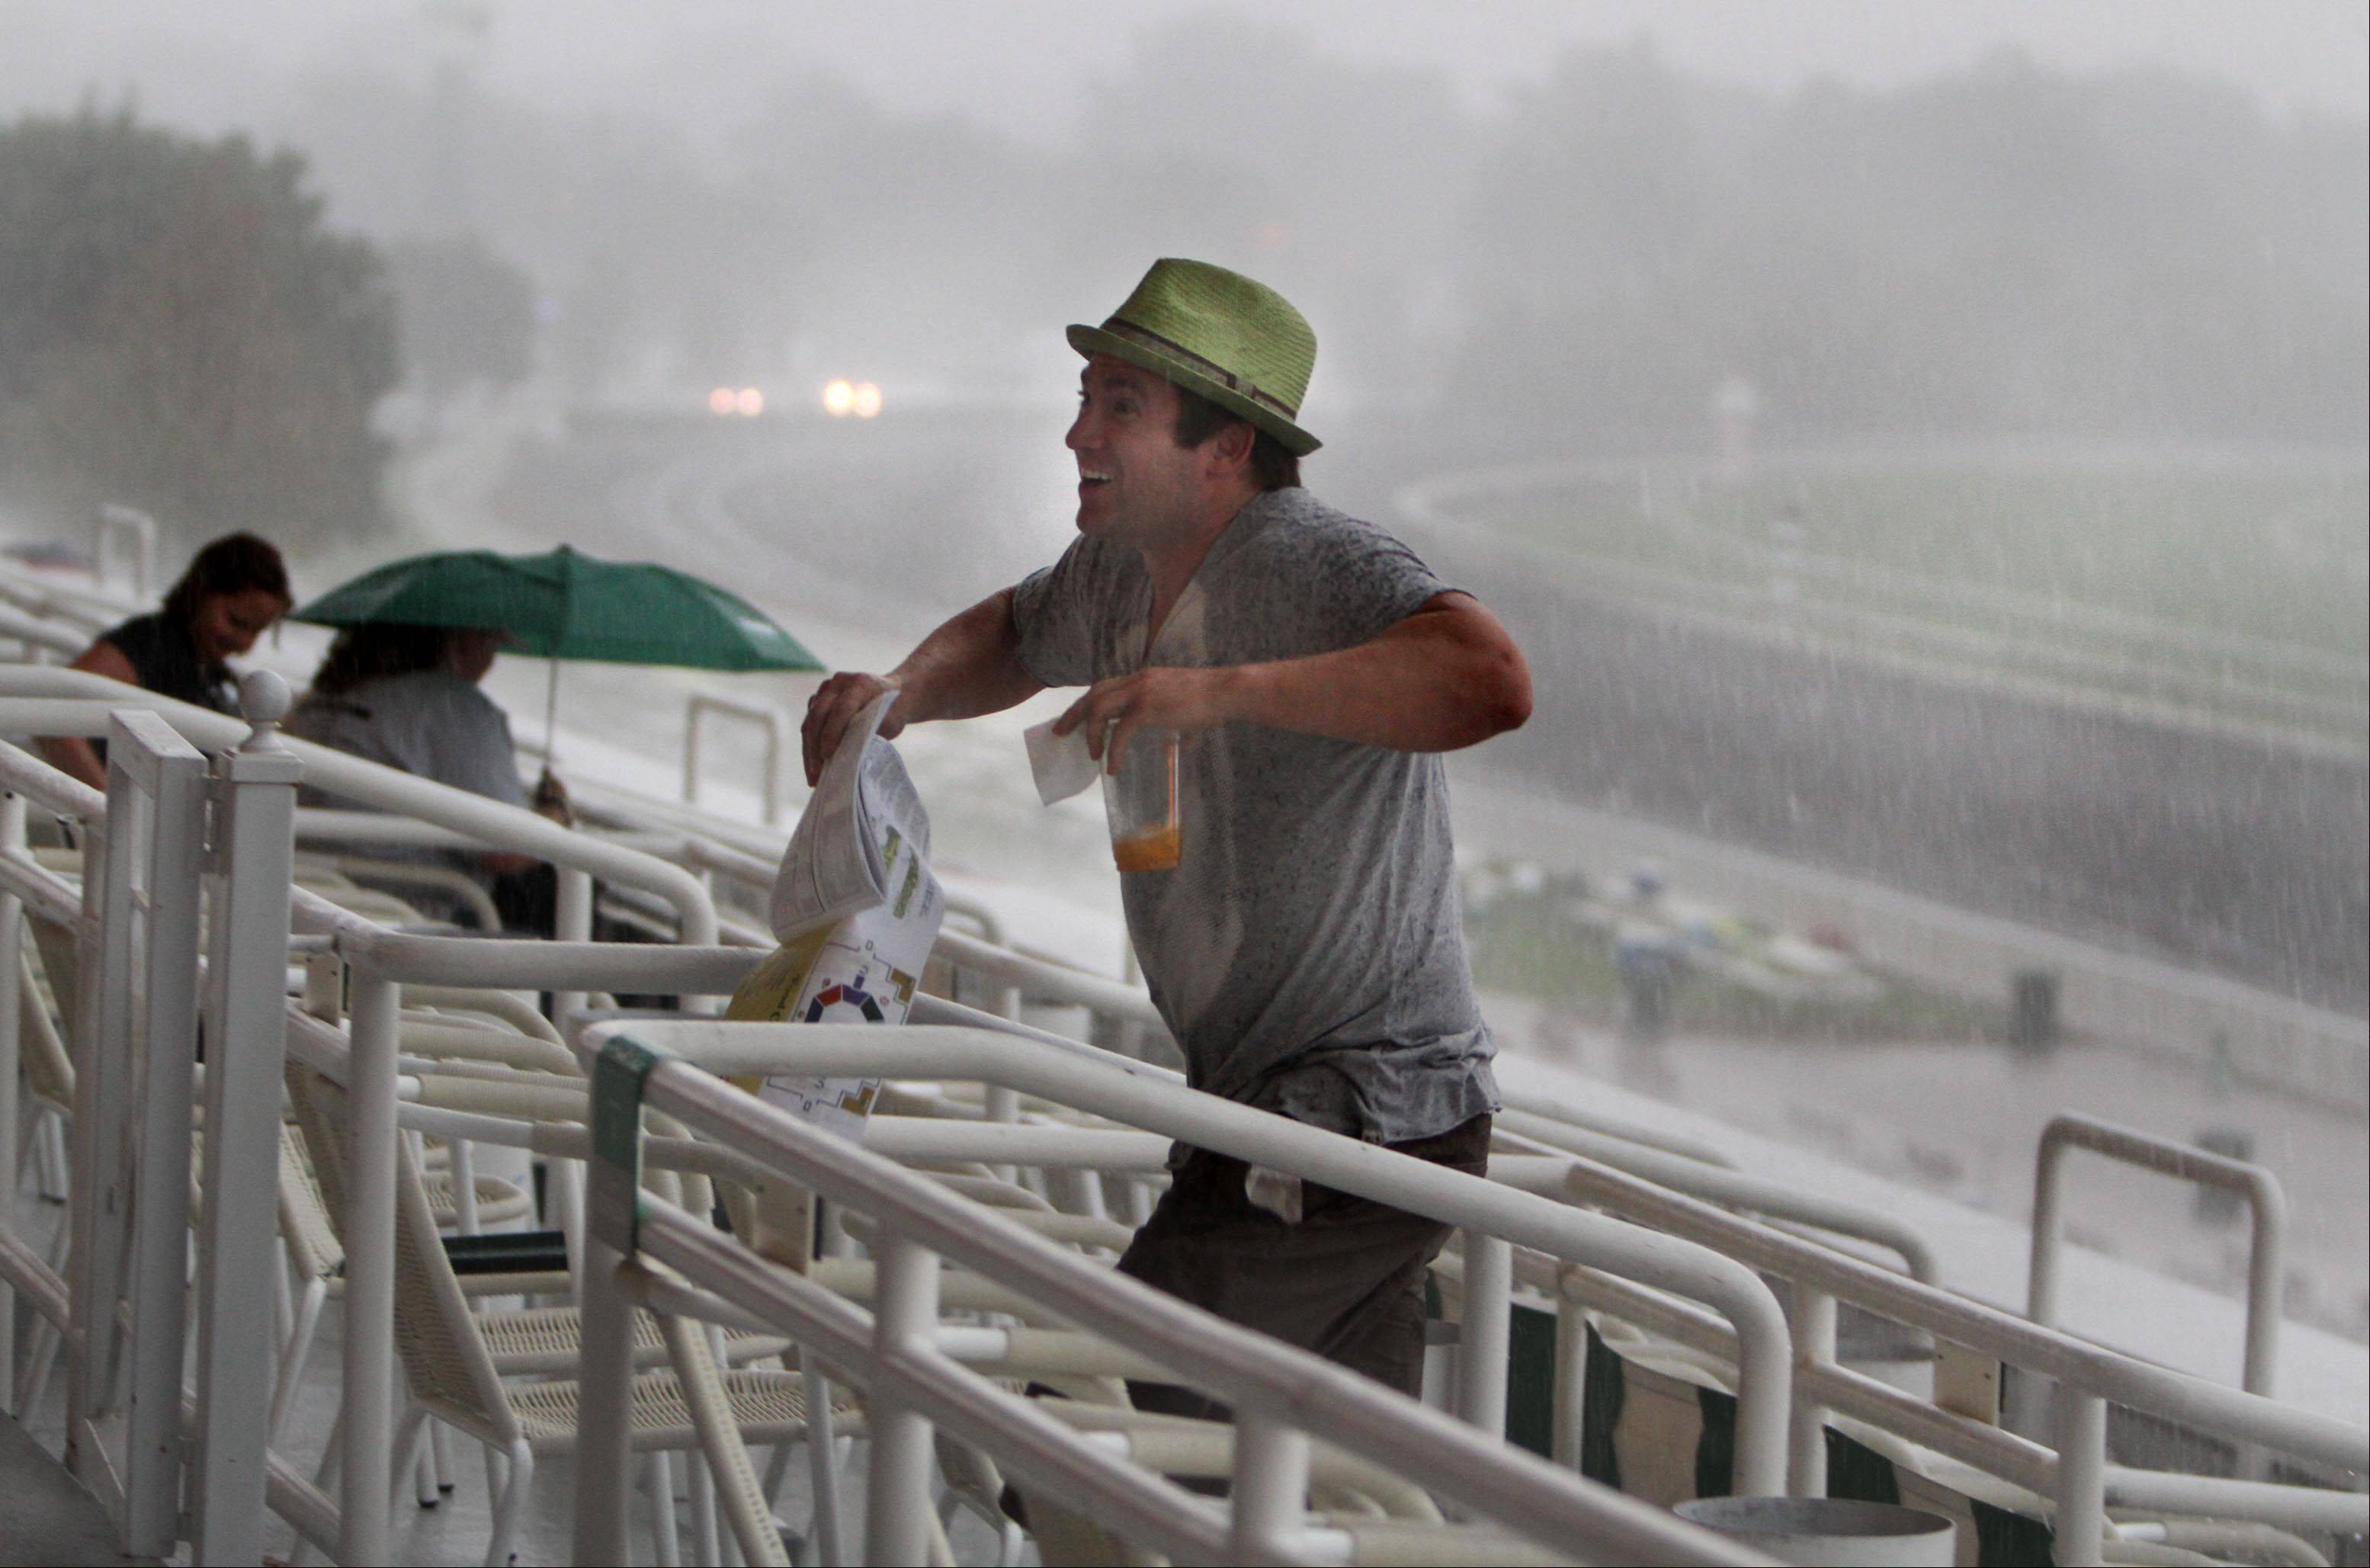 Rory McKenna of Arlington Heights runs for cover as it rains heavy before the Arlington Million.